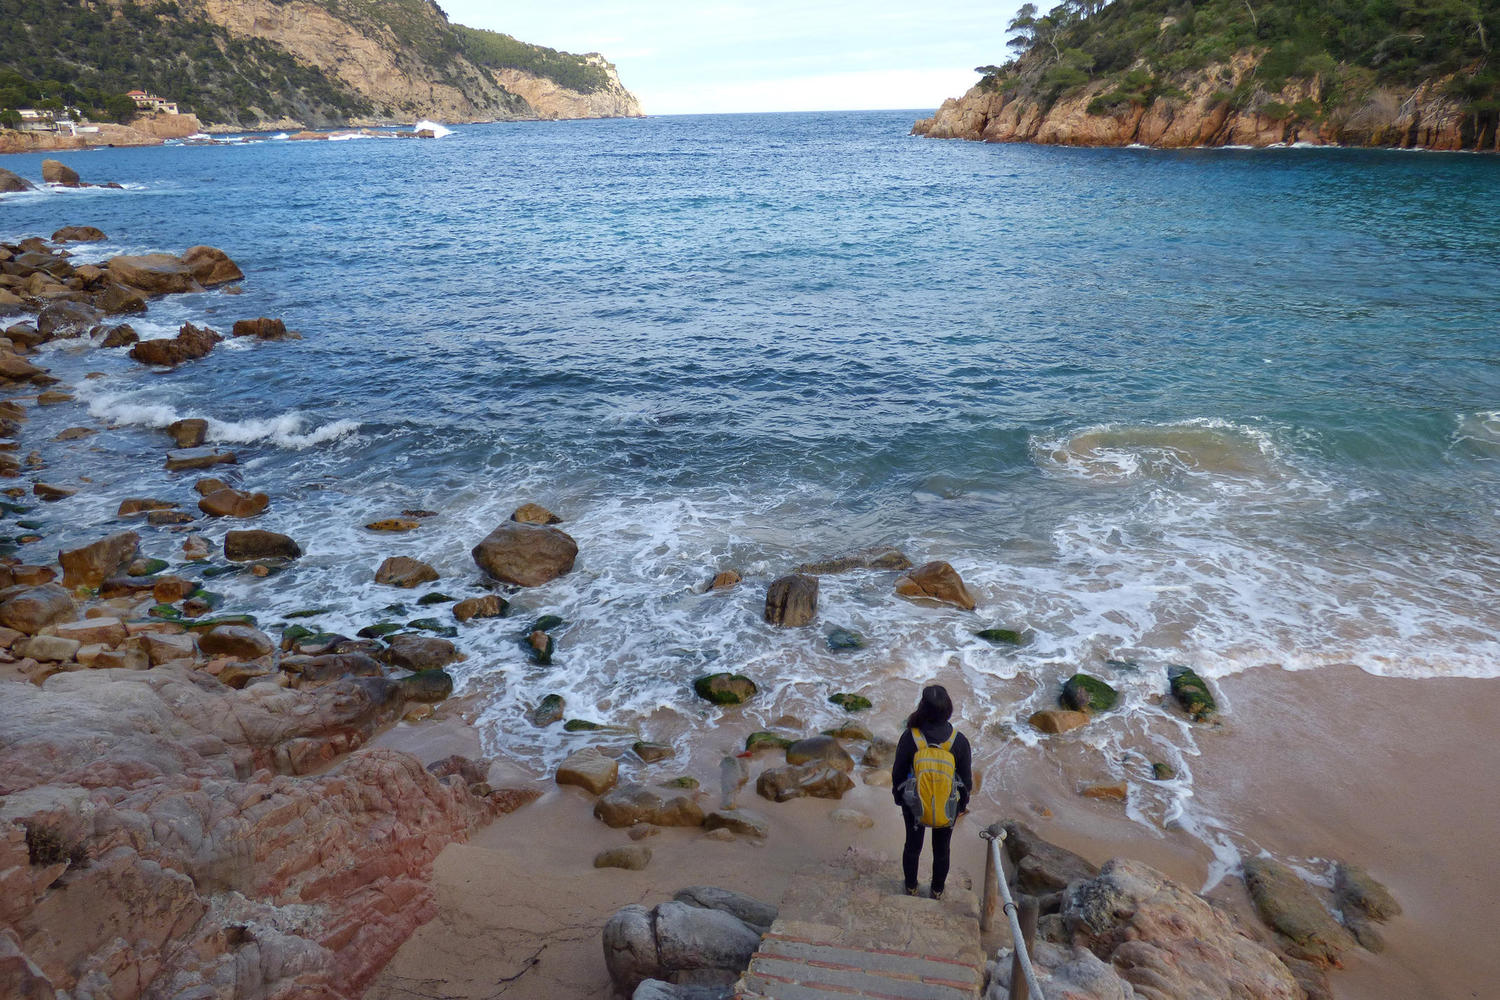 Stairway to the sea in Aiguablava, Costa Brava